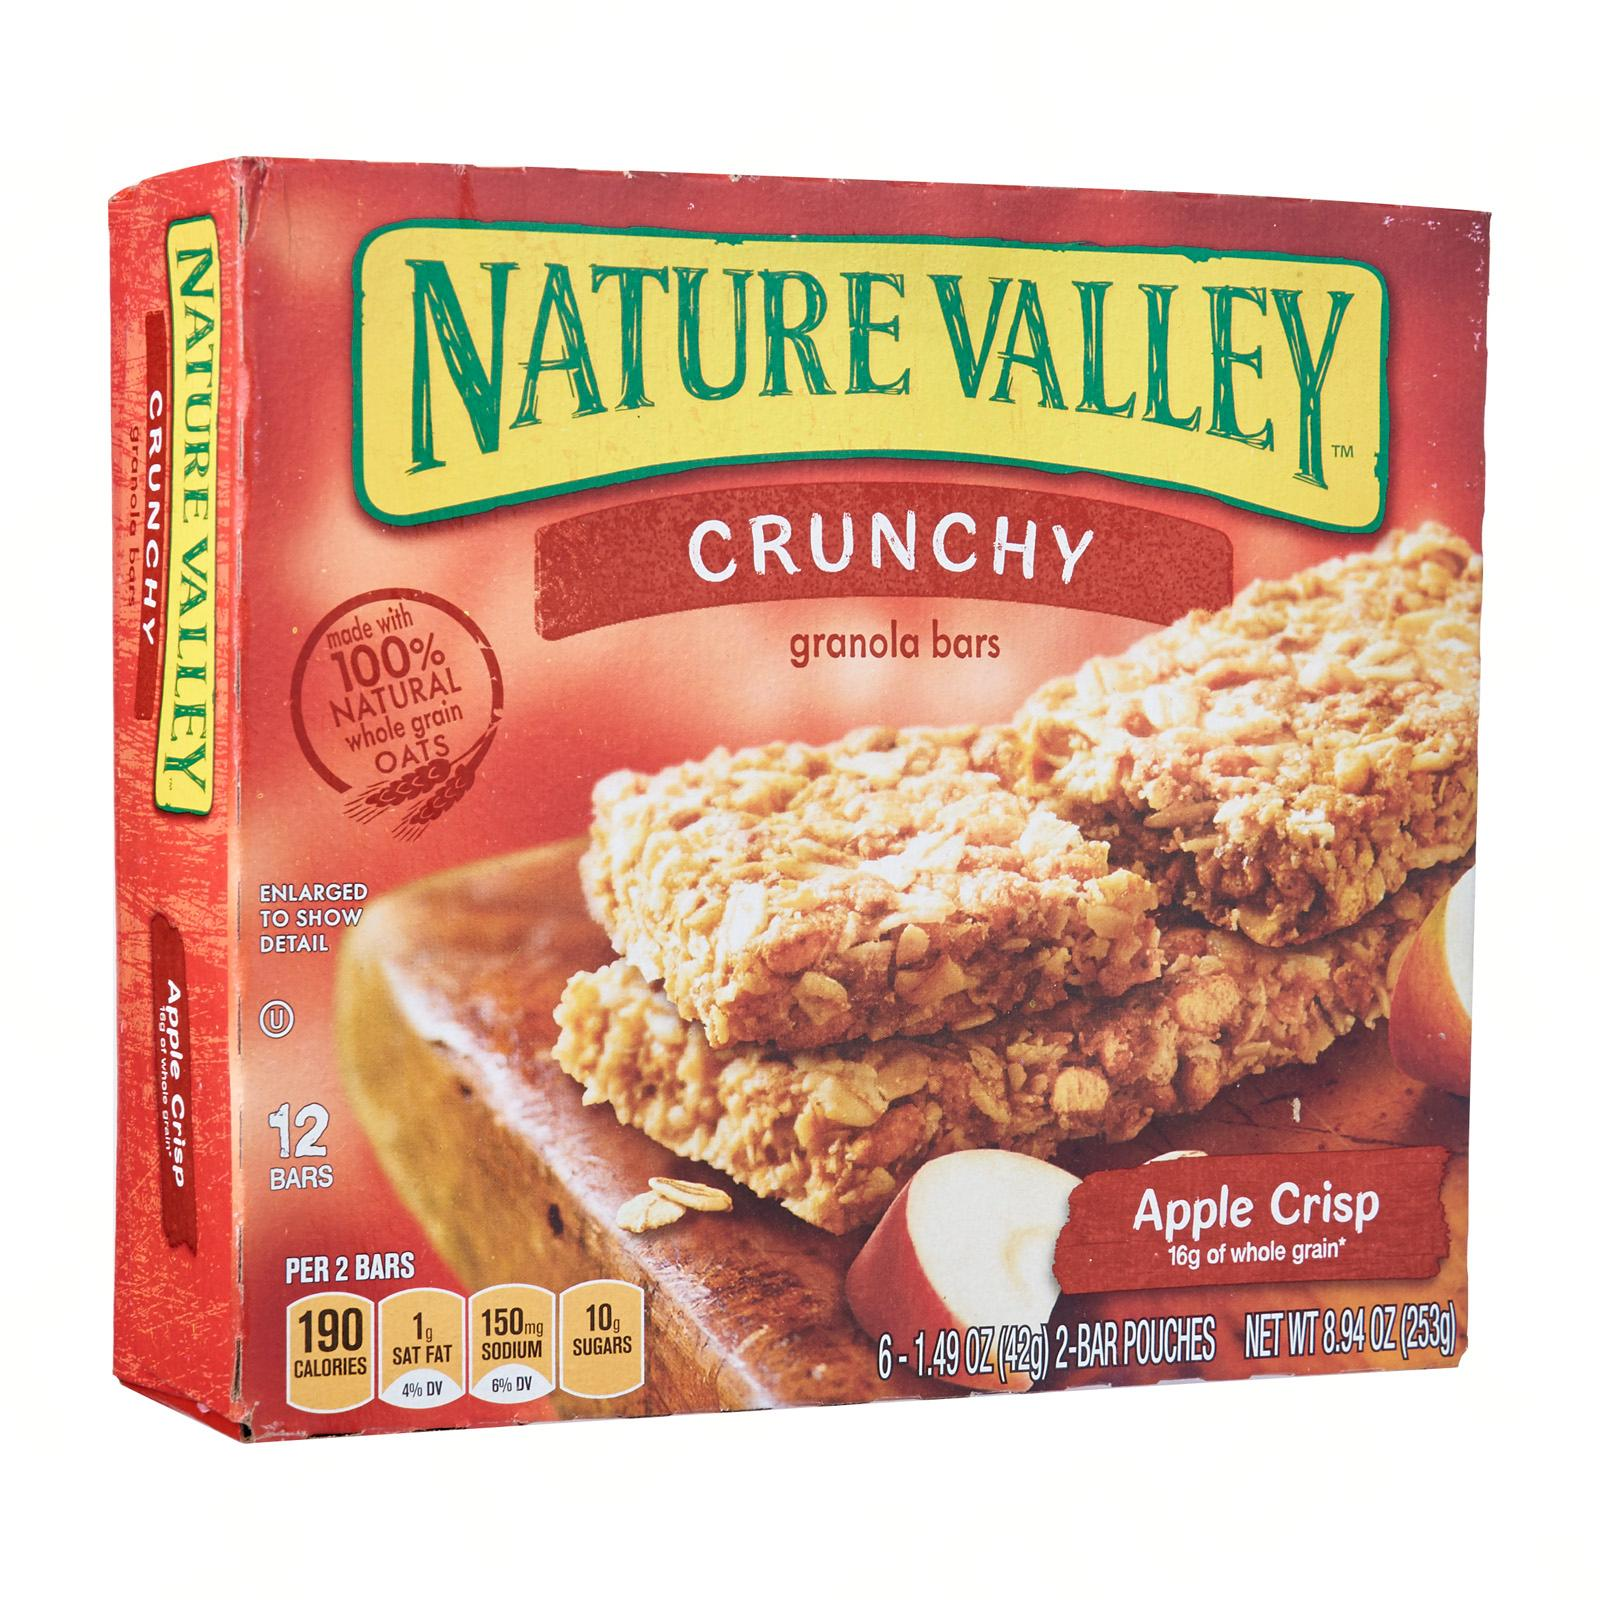 NATURE VALLEY Granola Bar - Apple Crisp 6s x 42g